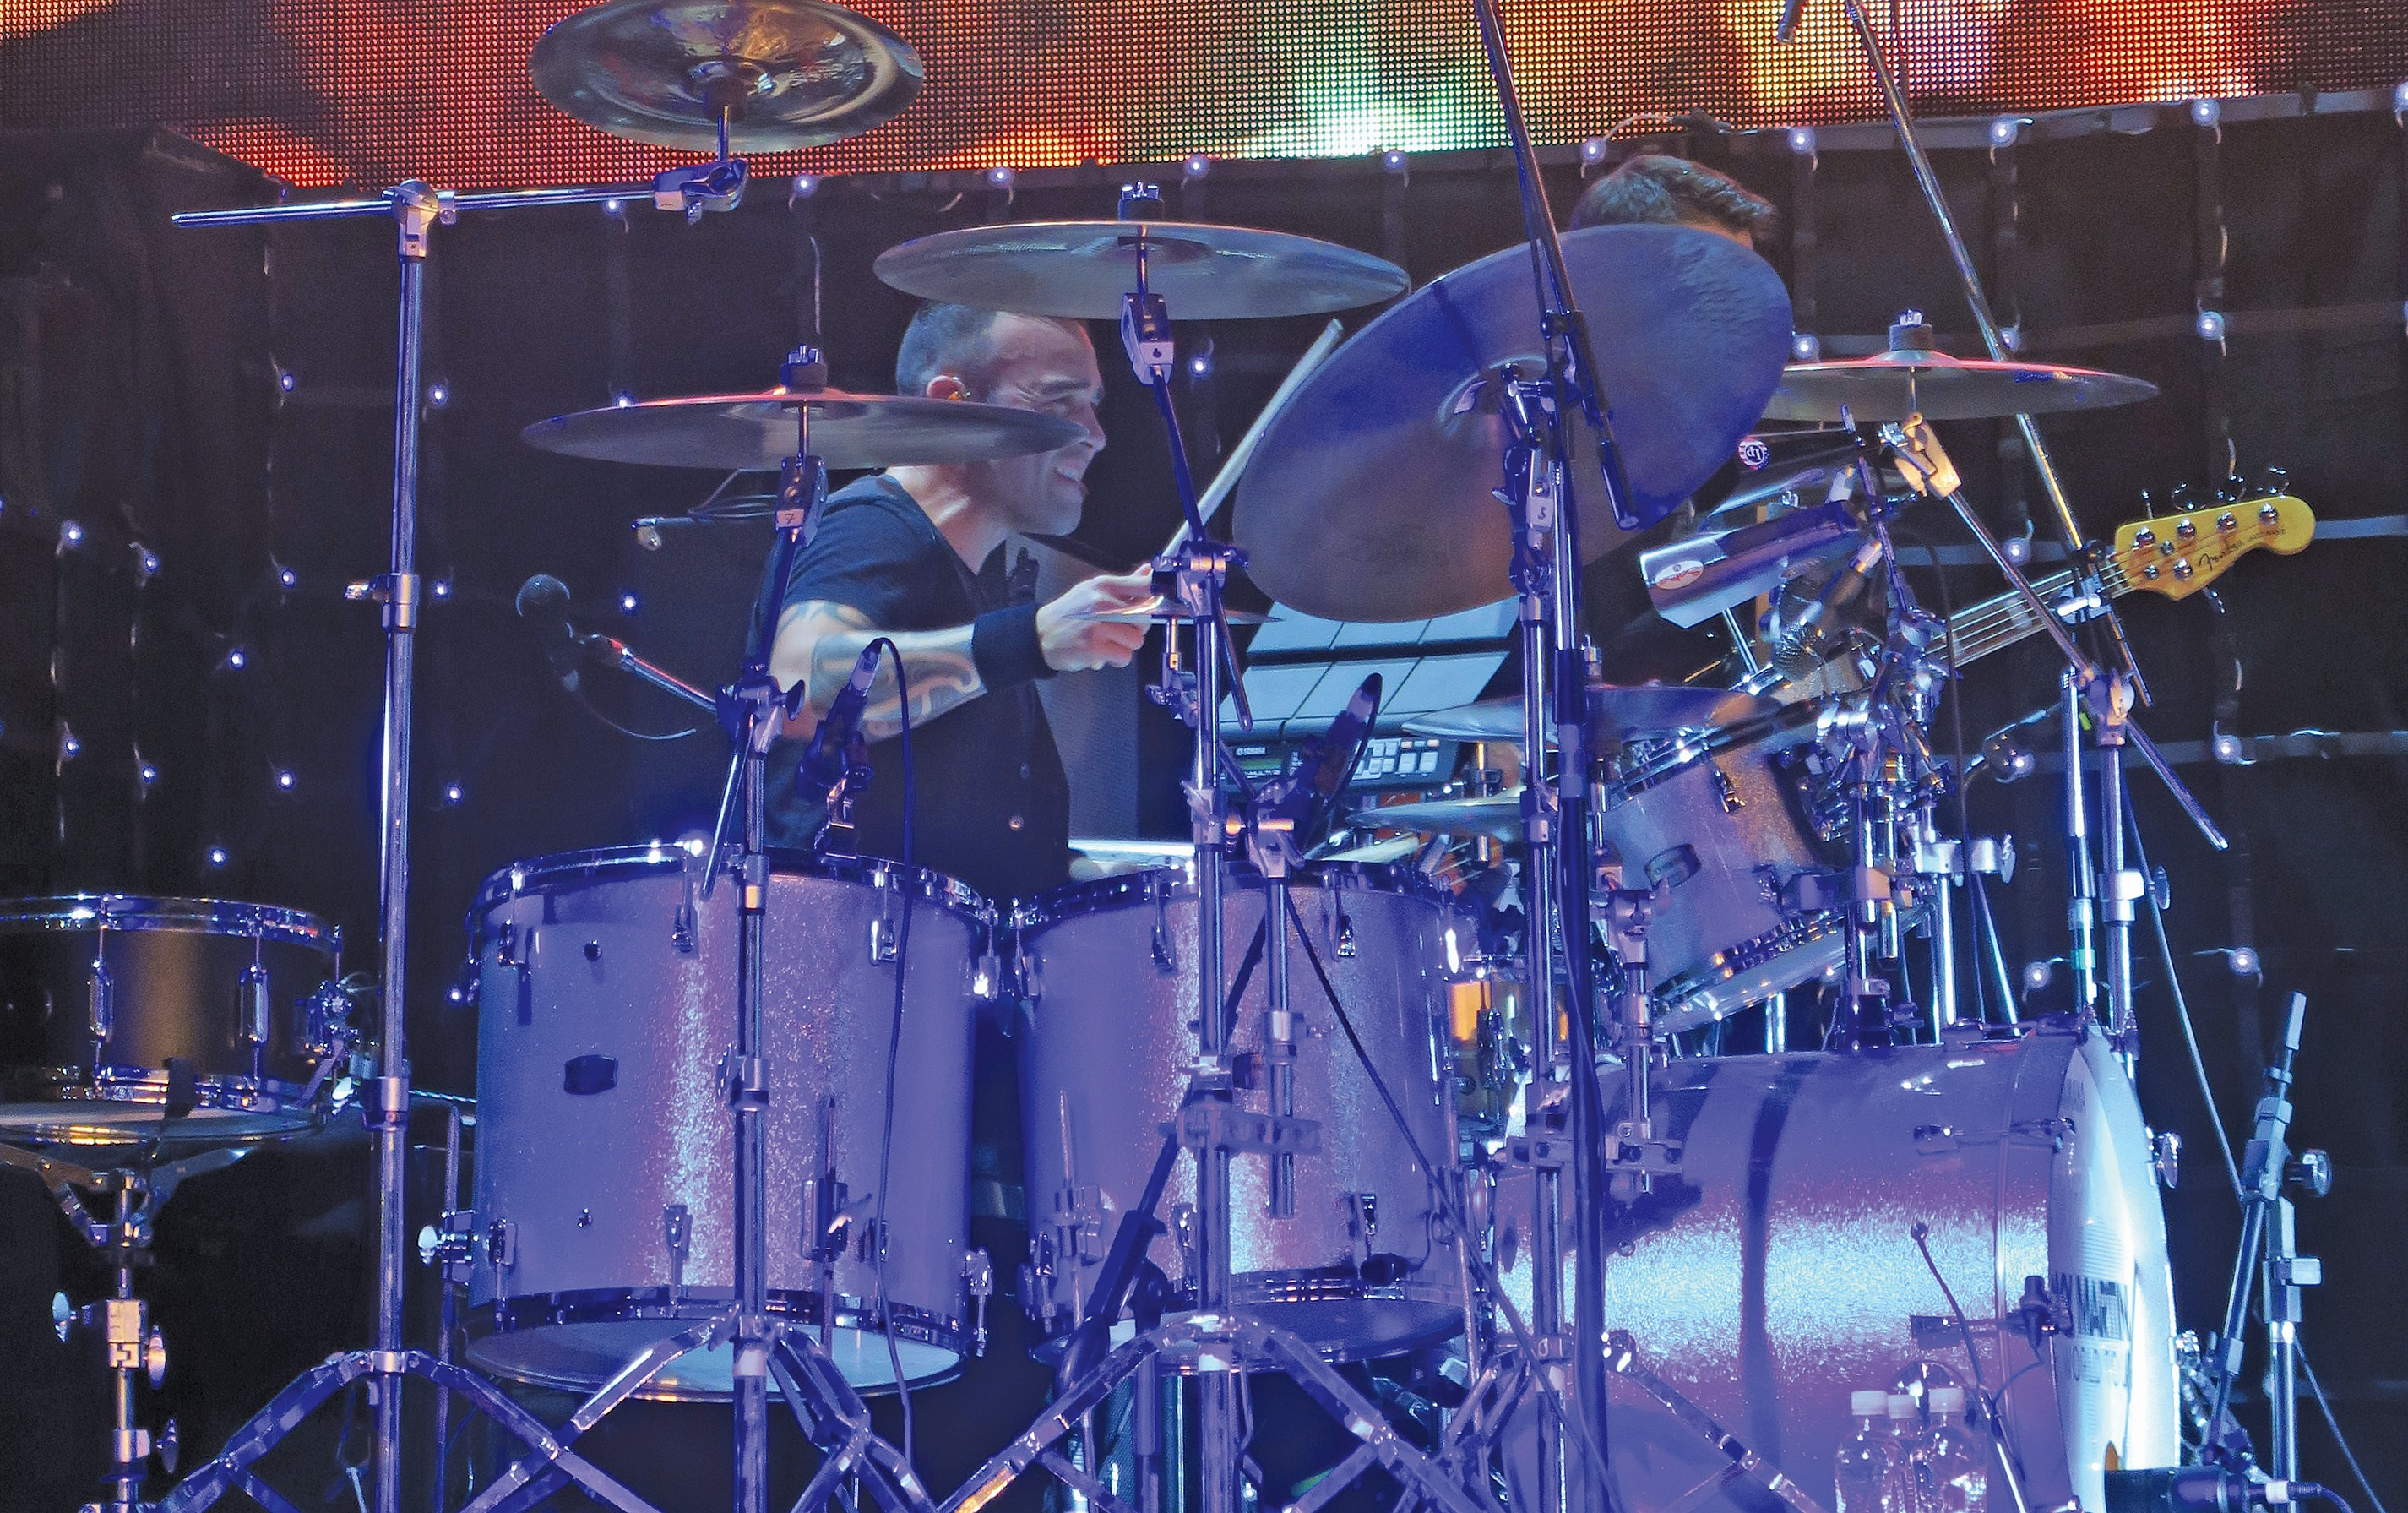 Tony Escapa live with Ricky Martin in Las Vegas....Beier 1.5 Steel--6.5 x 14-